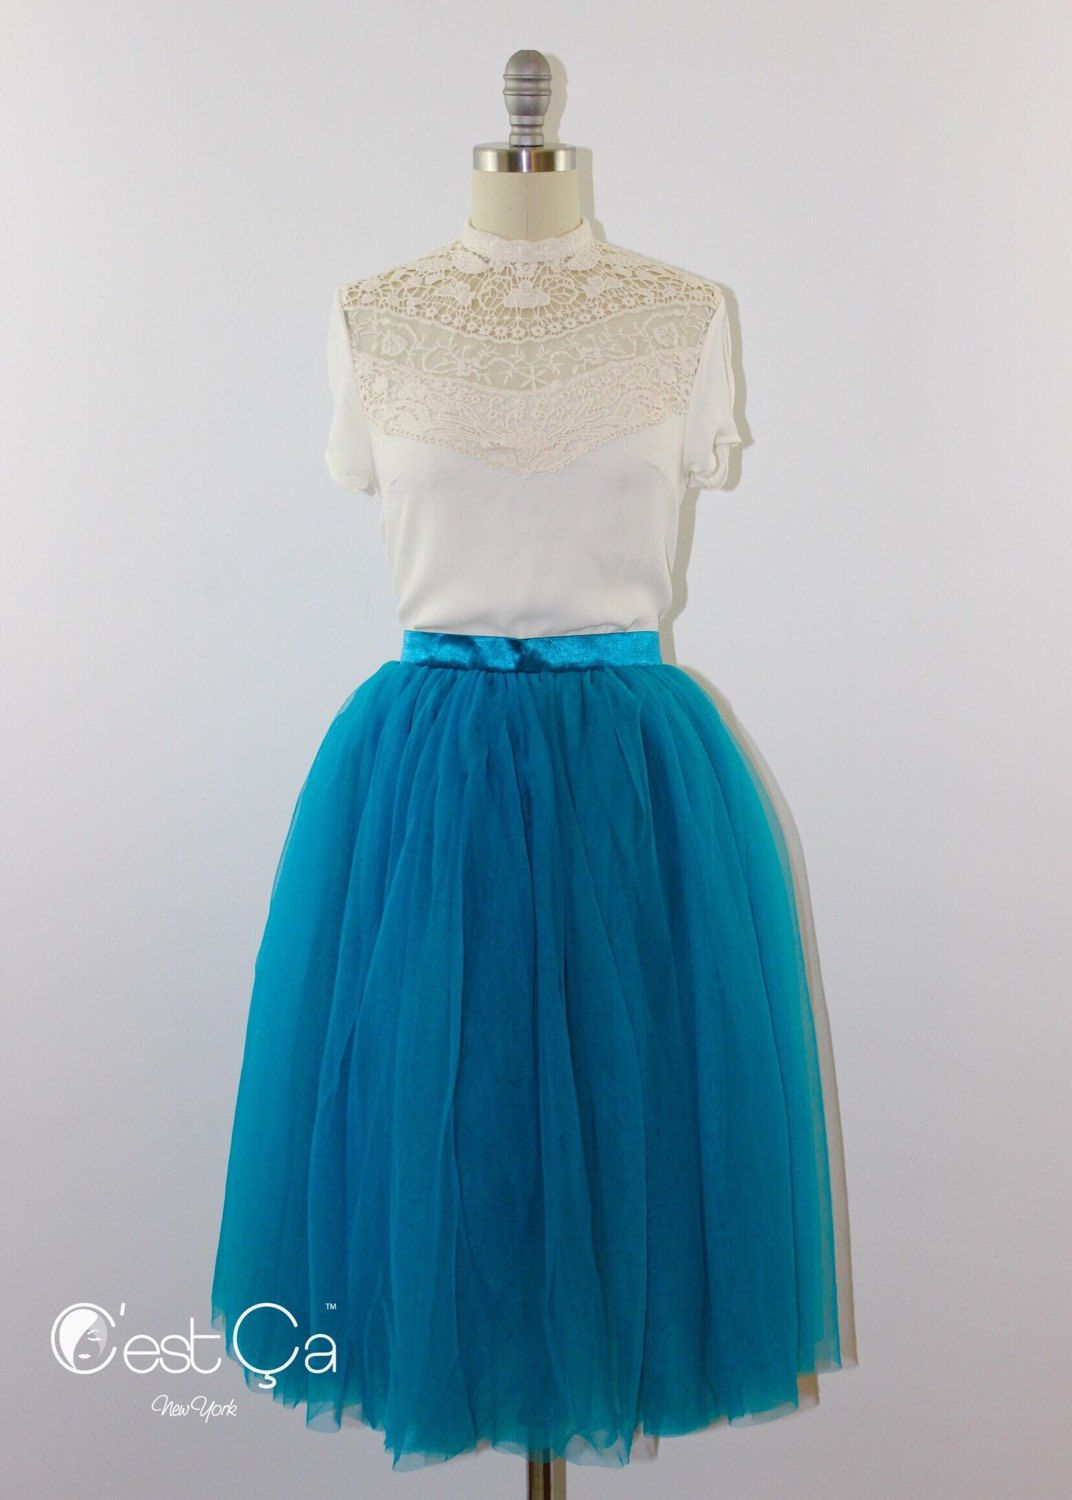 d29a45a2f2 New to CestCaNY on Etsy: Colette - Tulle Skirt Teal Tulle Skirt Soft Tulle  Skirt Tea Length Tutu Layered 4-layersTulle Skirt Dance Skirt Bridasmaids  Skirt ...